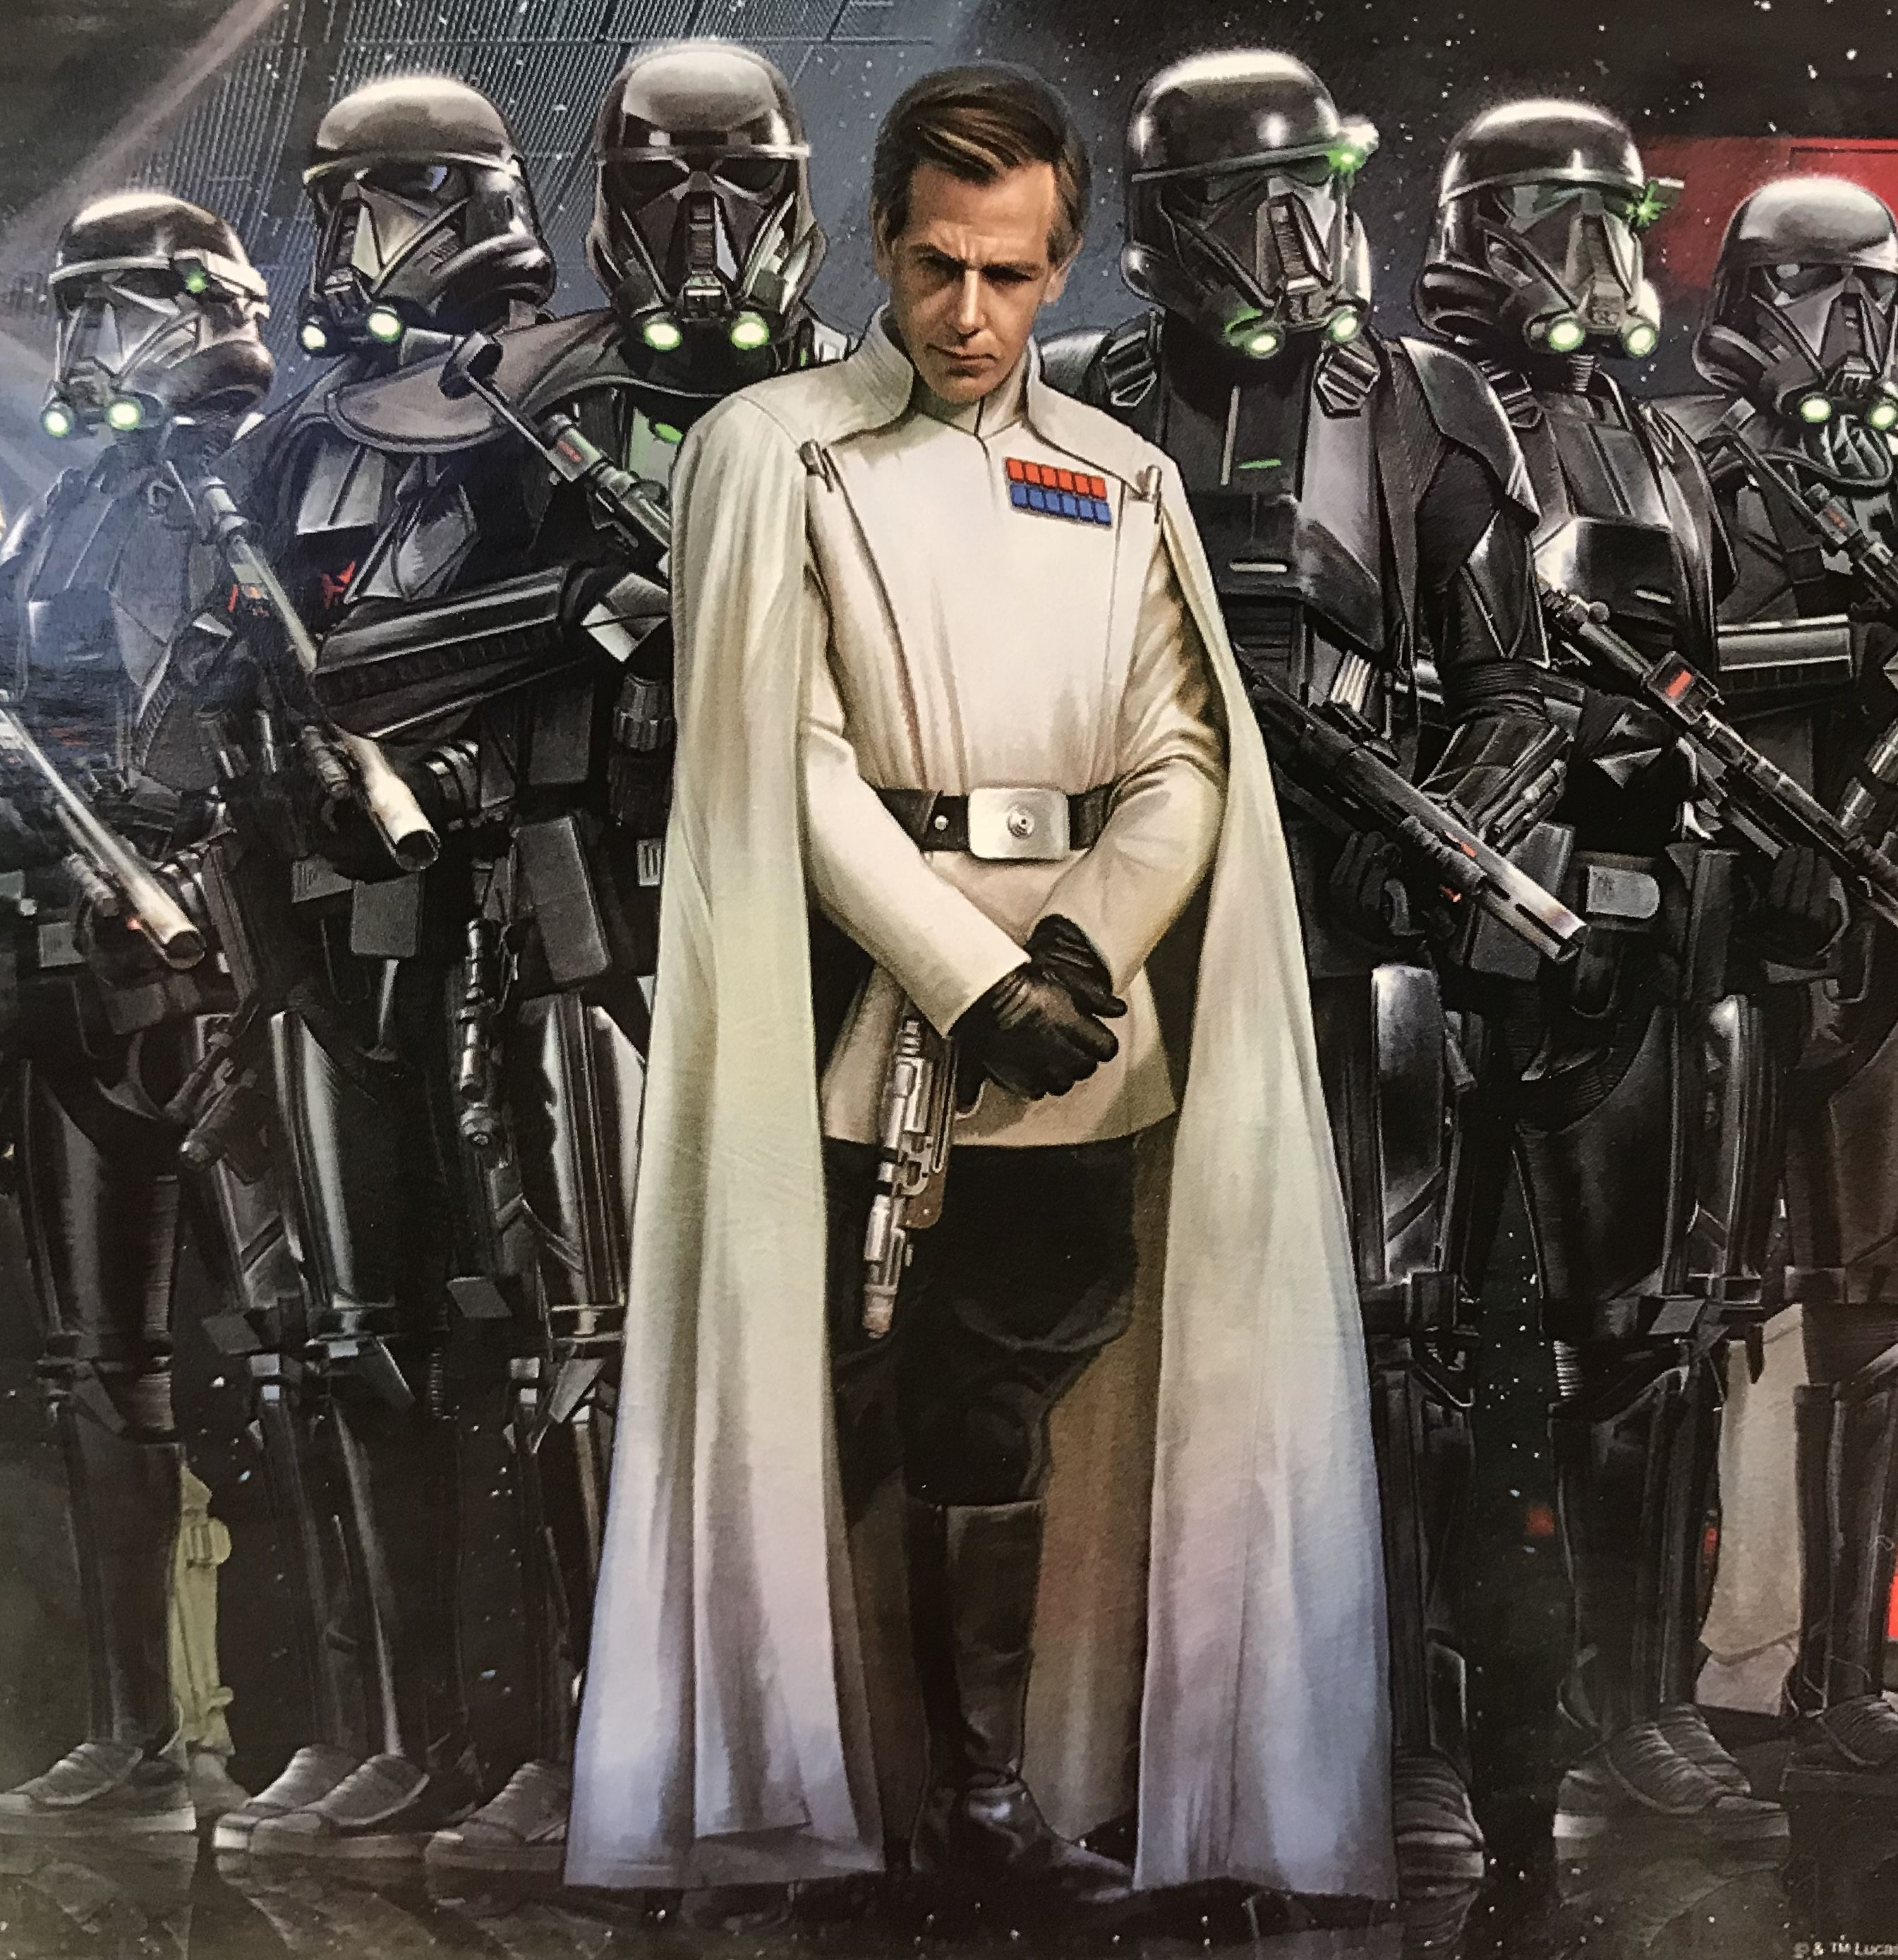 Krennic And His Death Troopers Star Wars Images Star Wars Geek Star Wars Empire